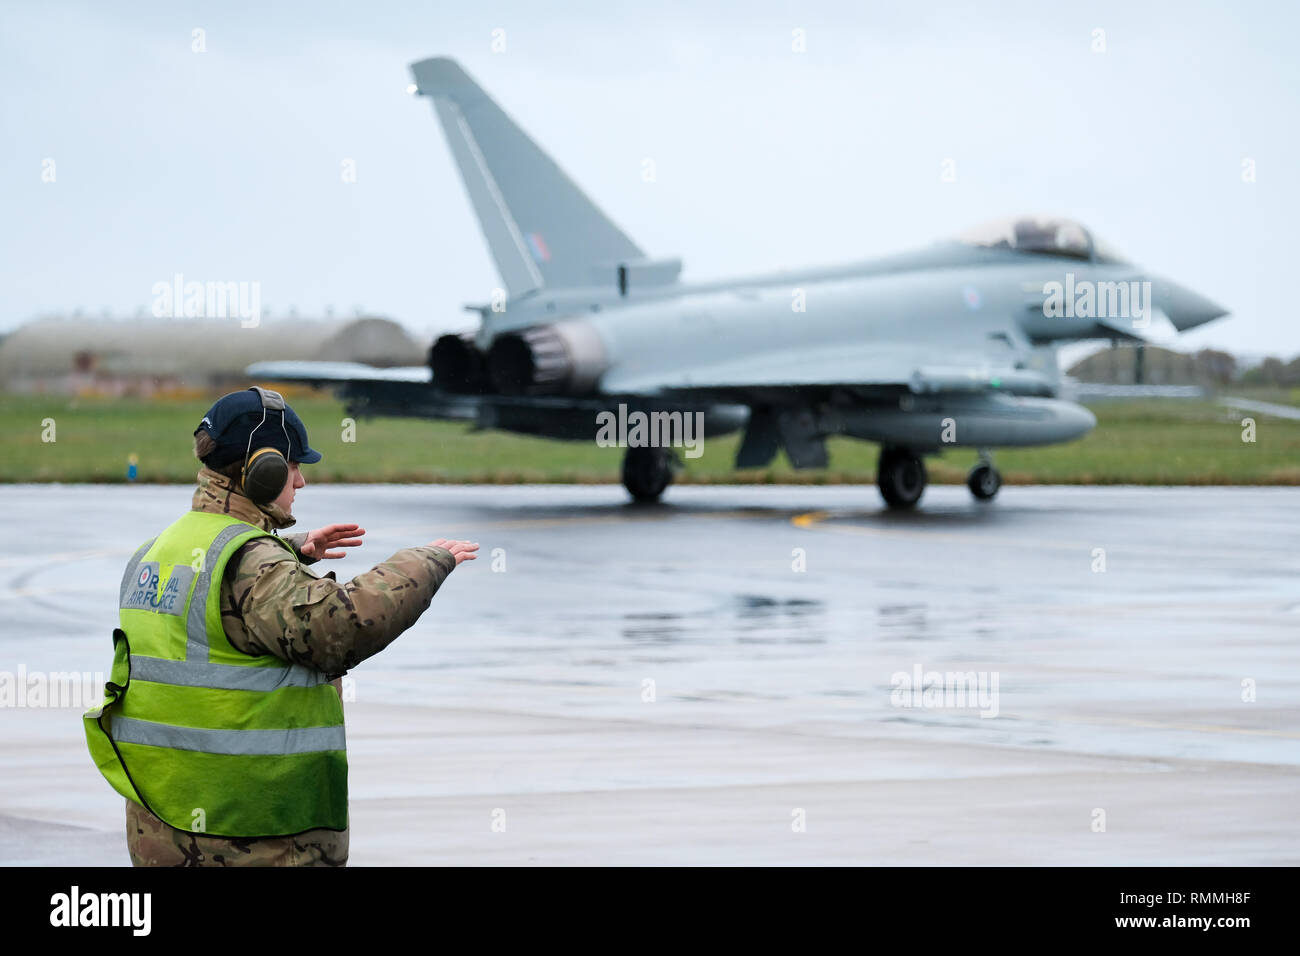 Ground crew signal an RAF Tornado jet fighter for take-off at RAF Lossiemouth base, Moray, Scotland - Stock Image